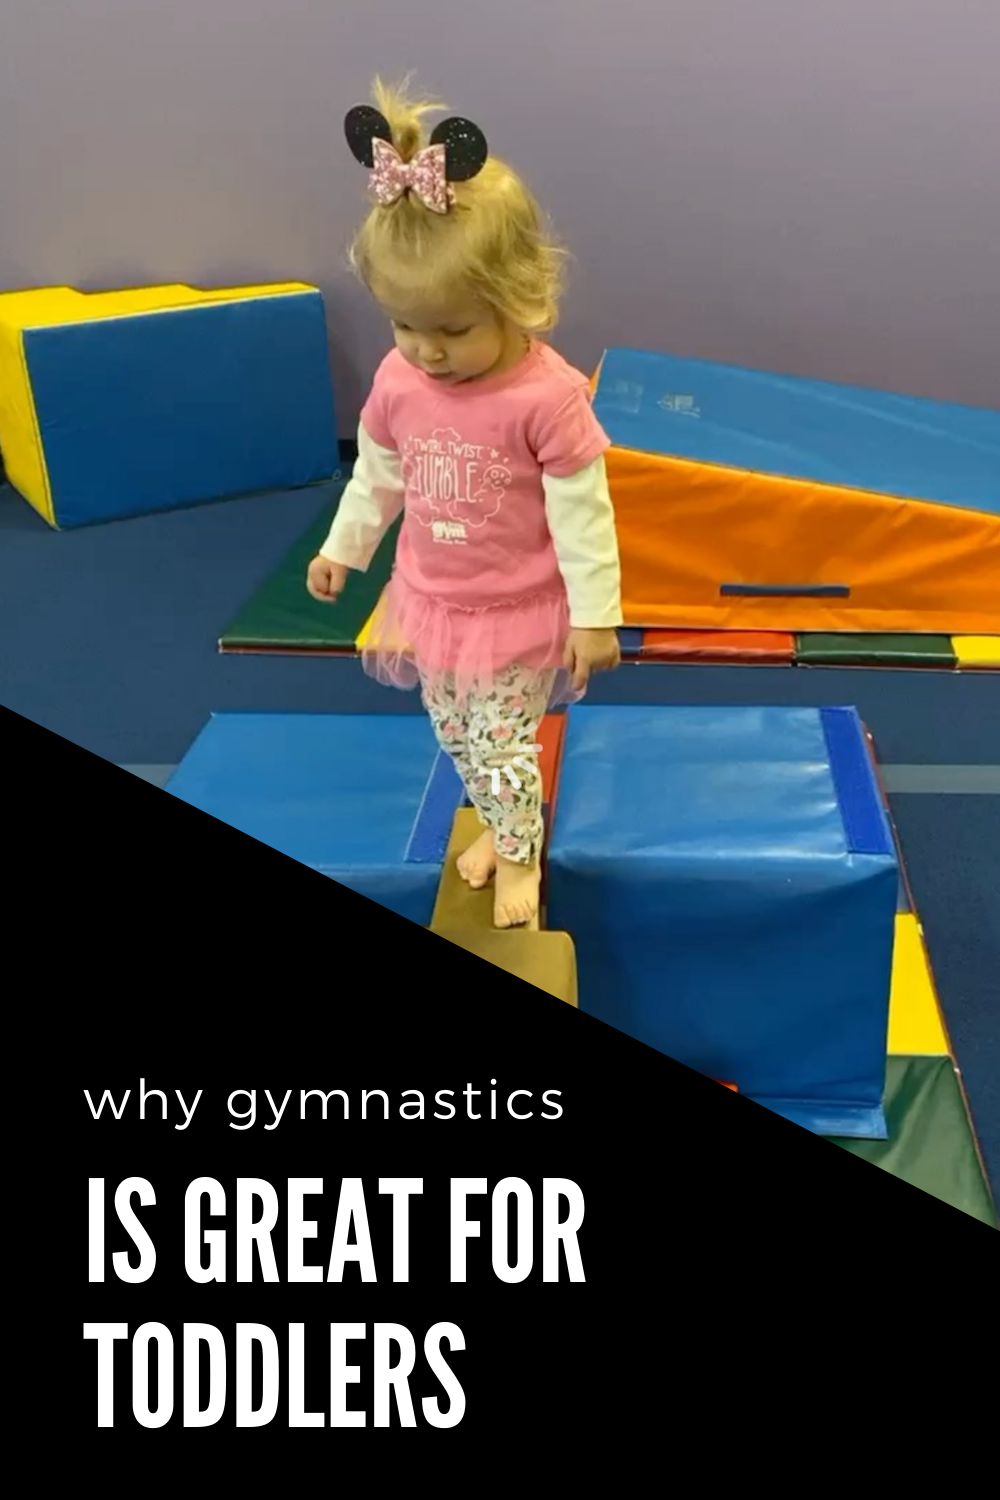 4 reasons why gymnastics is great for toddlers